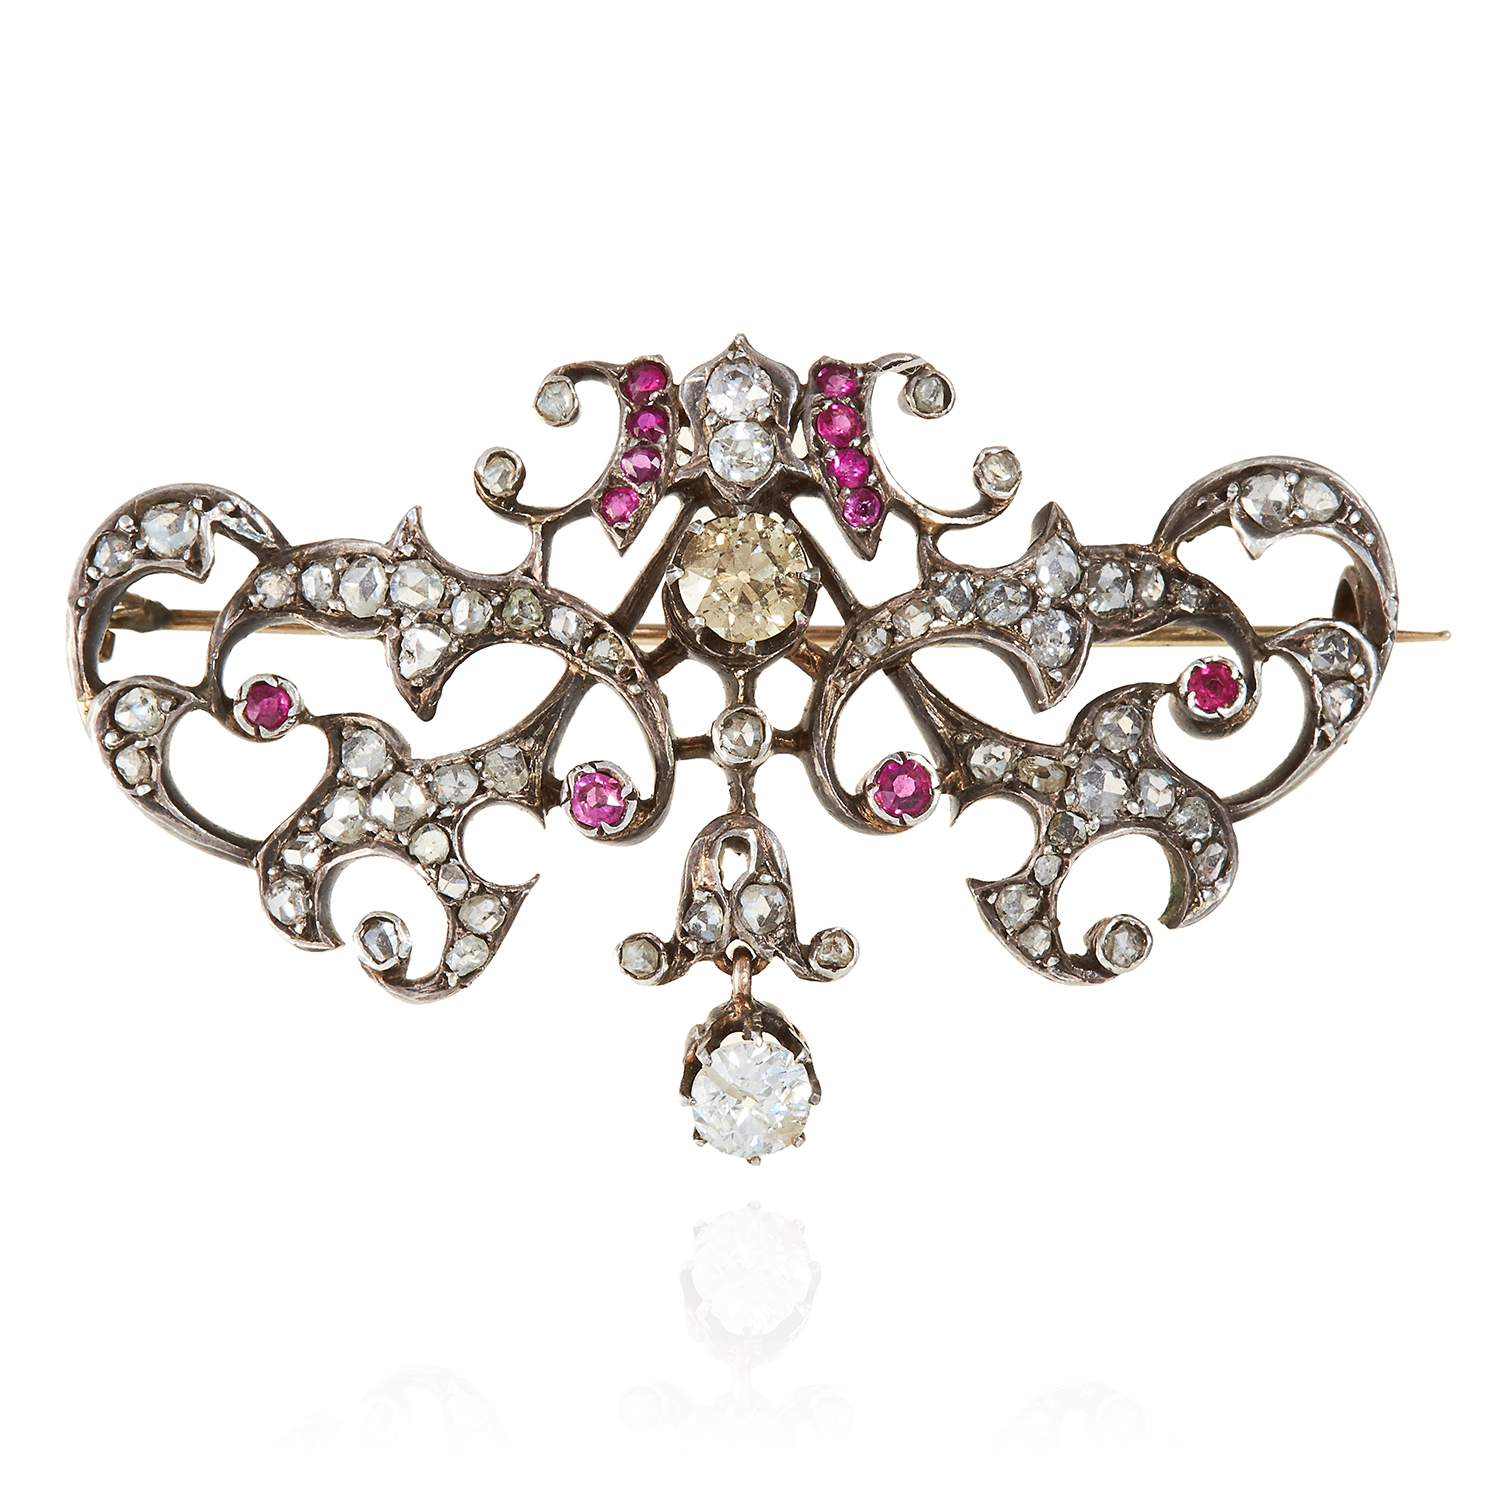 Los 310 - AN ANTIQUE RUBY AND DIAMOND BROOCH, 19TH CENTURY in yellow gold and silver, two principal old cut